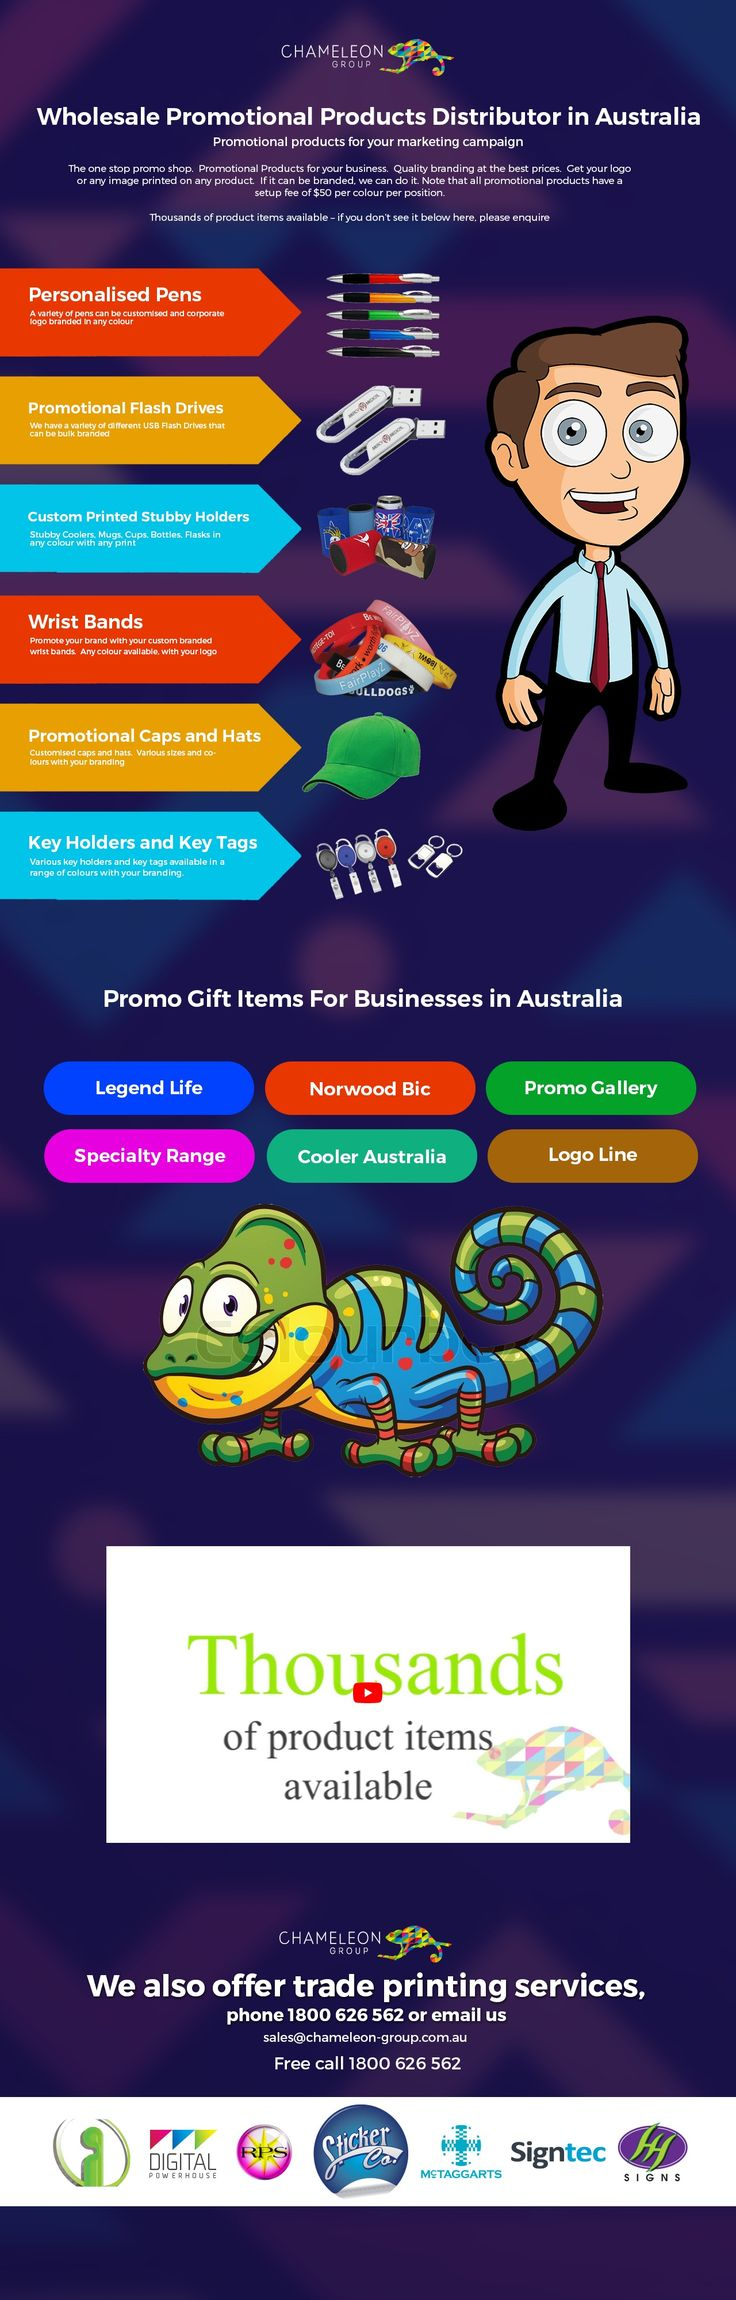 The one #stop #promo #shop. #Wholesale #Promotional #Products #Distributor in #Australia. Quality branding at the best prices.  Get your logo or any image printed on any product. If it can be branded, we can do it. Note that all promotional products have a setup fee of $50 per colour per position.